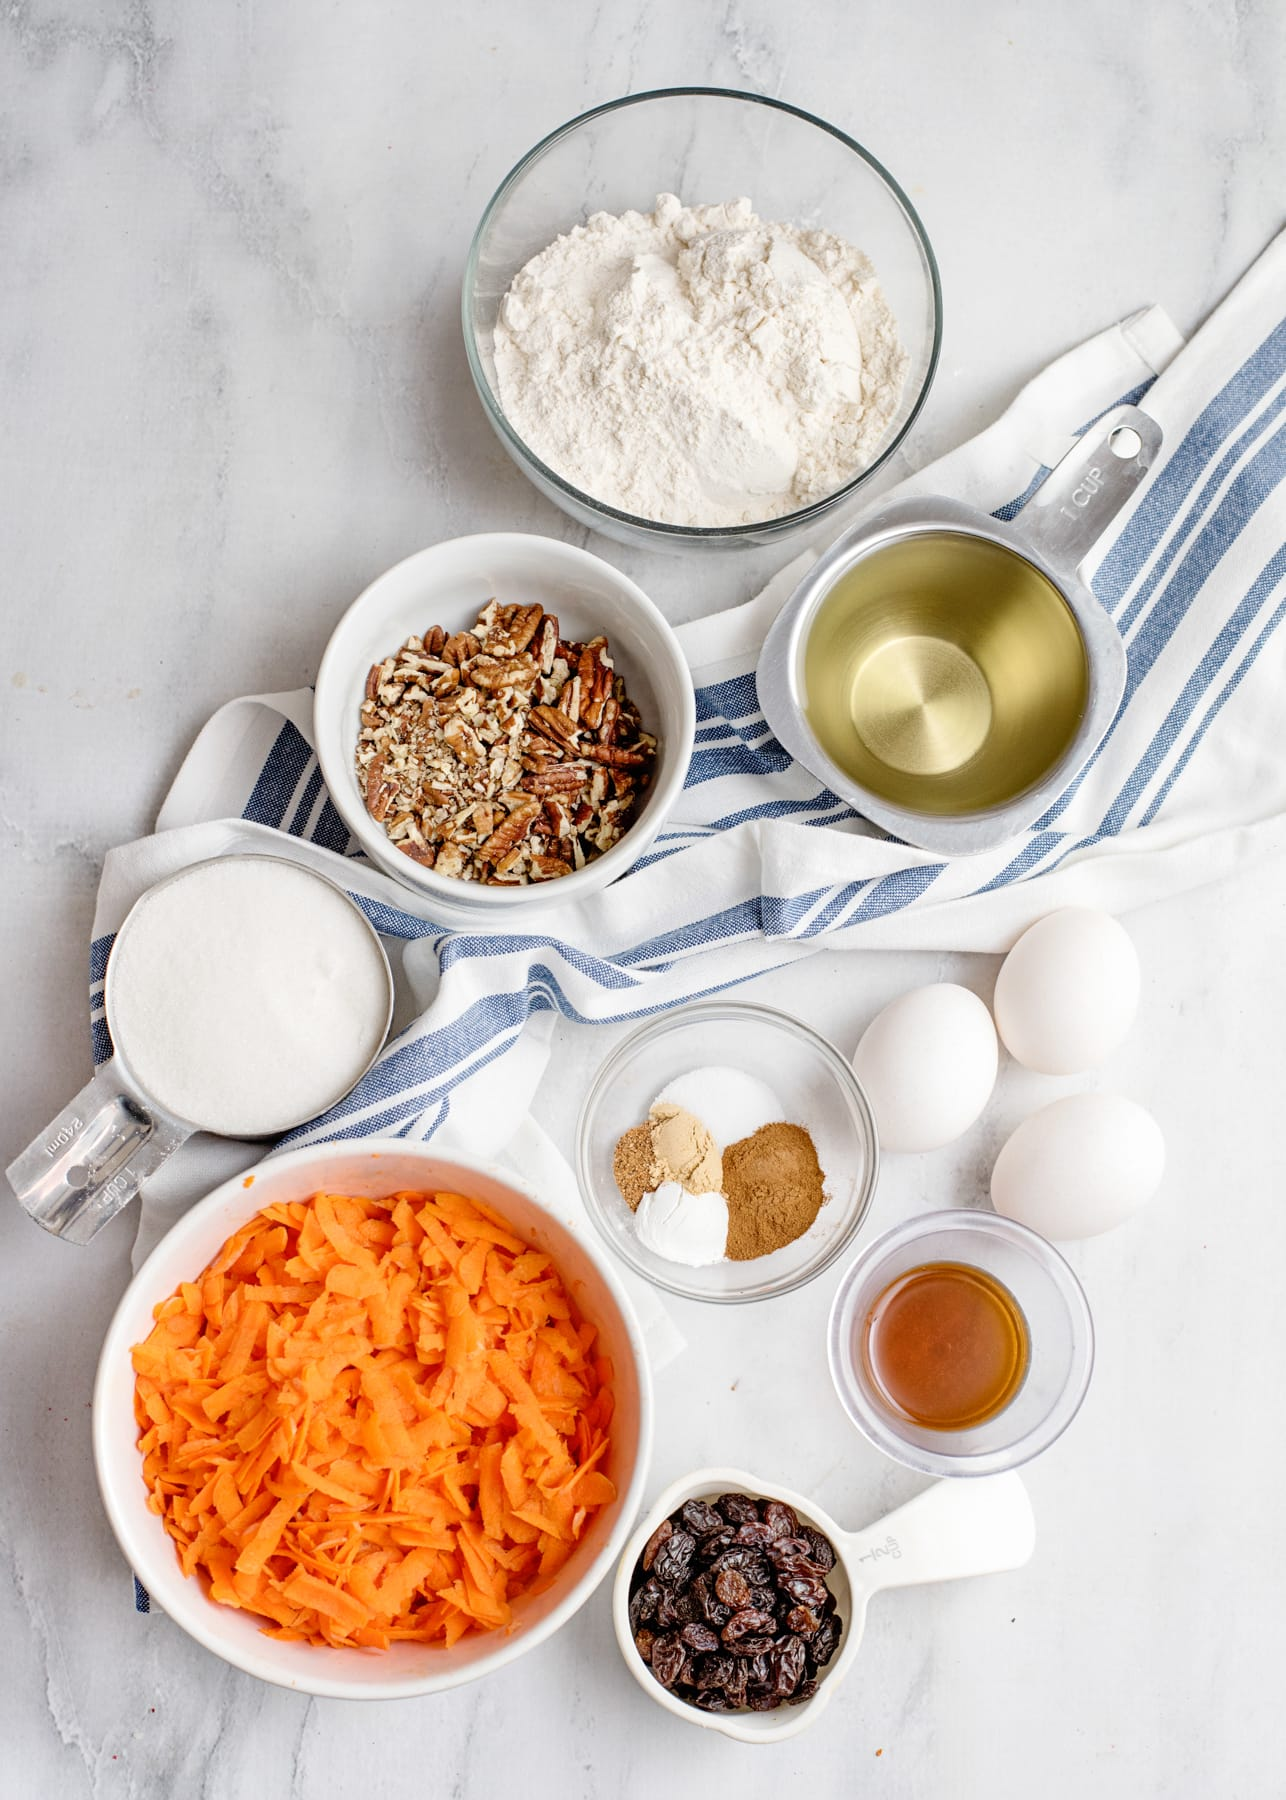 ingredients to make carrot cake loaf recipe, grated carrots, flour, eggs, oil, nuts and spices